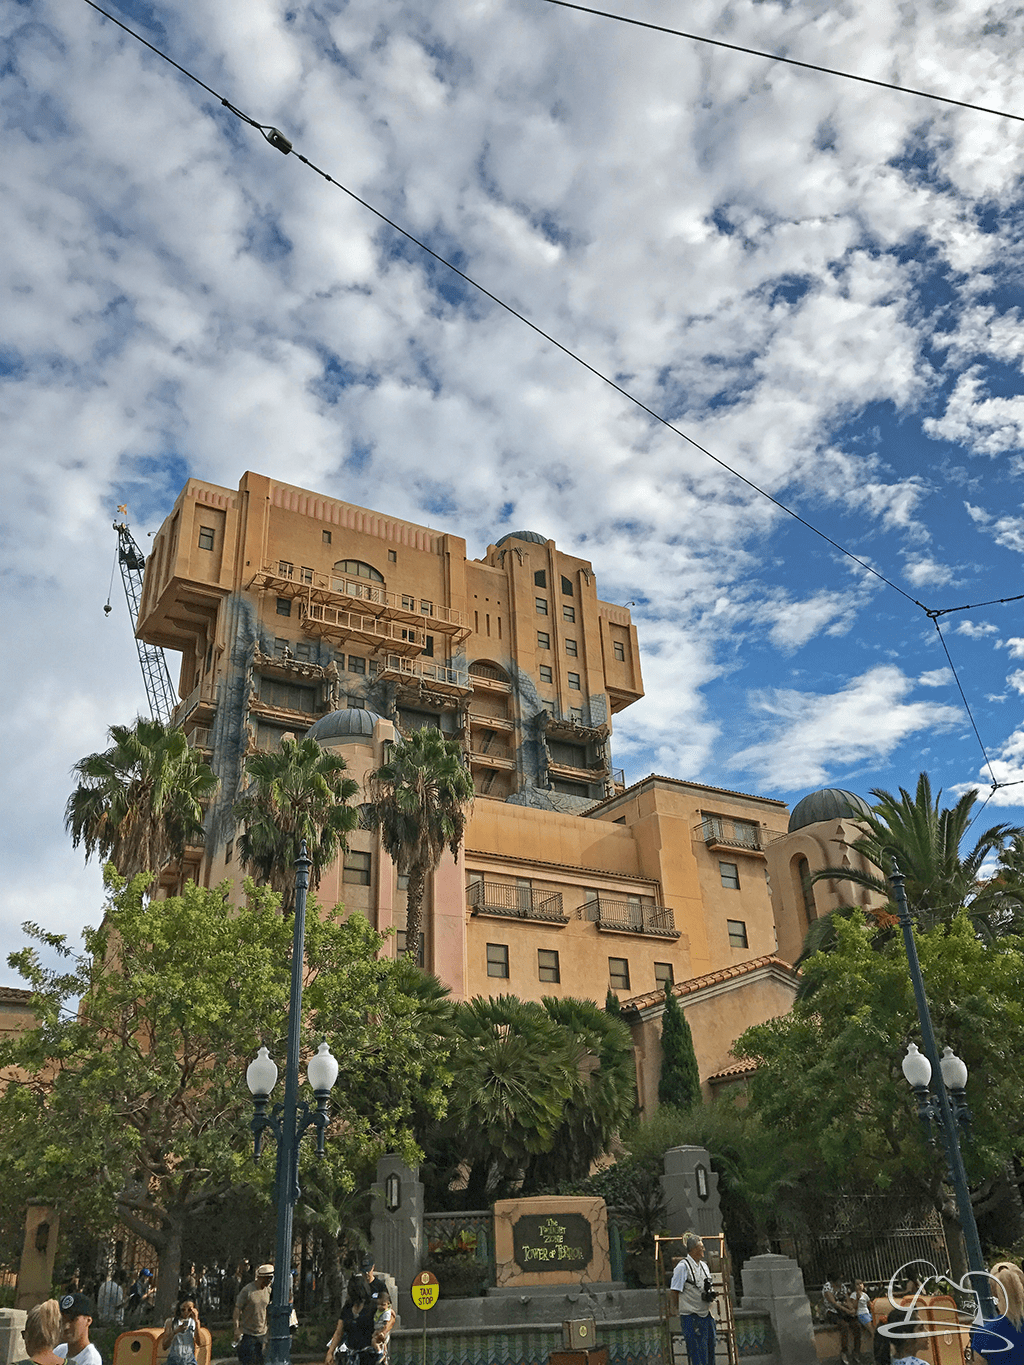 TOWER OF TERROR: Who know what kind of stuff you will find about your room and what has previously happened in it!